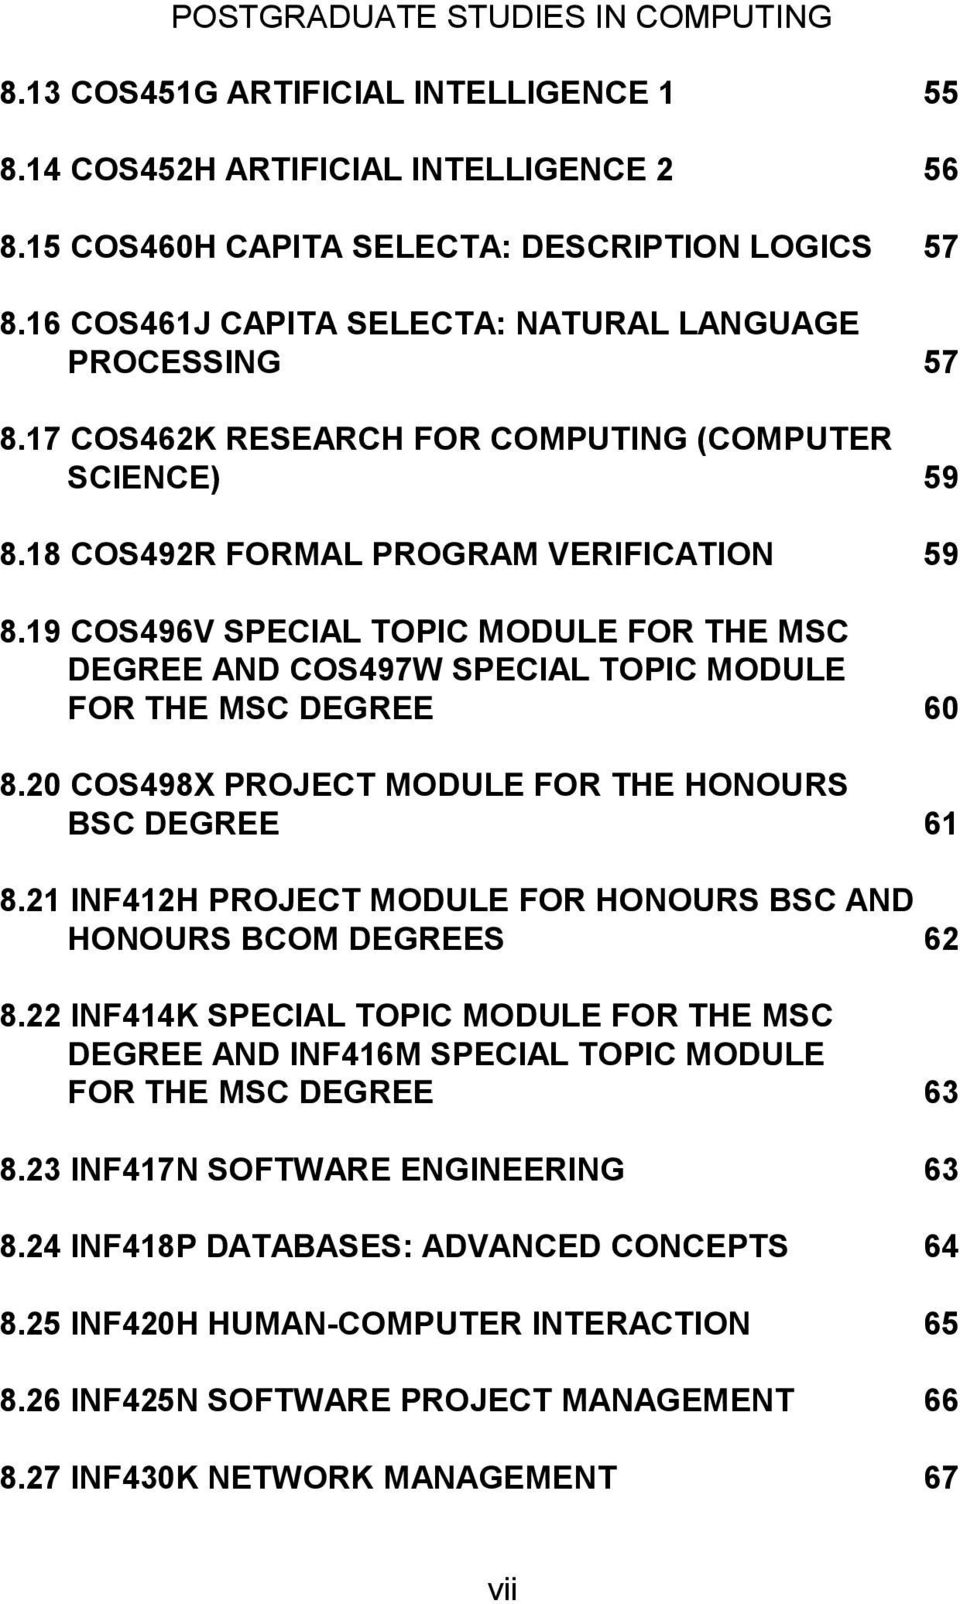 19 COS496V SPECIAL TOPIC MODULE FOR THE MSC DEGREE AND COS497W SPECIAL TOPIC MODULE FOR THE MSC DEGREE 60 8.20 COS498X PROJECT MODULE FOR THE HONOURS BSC DEGREE 61 8.